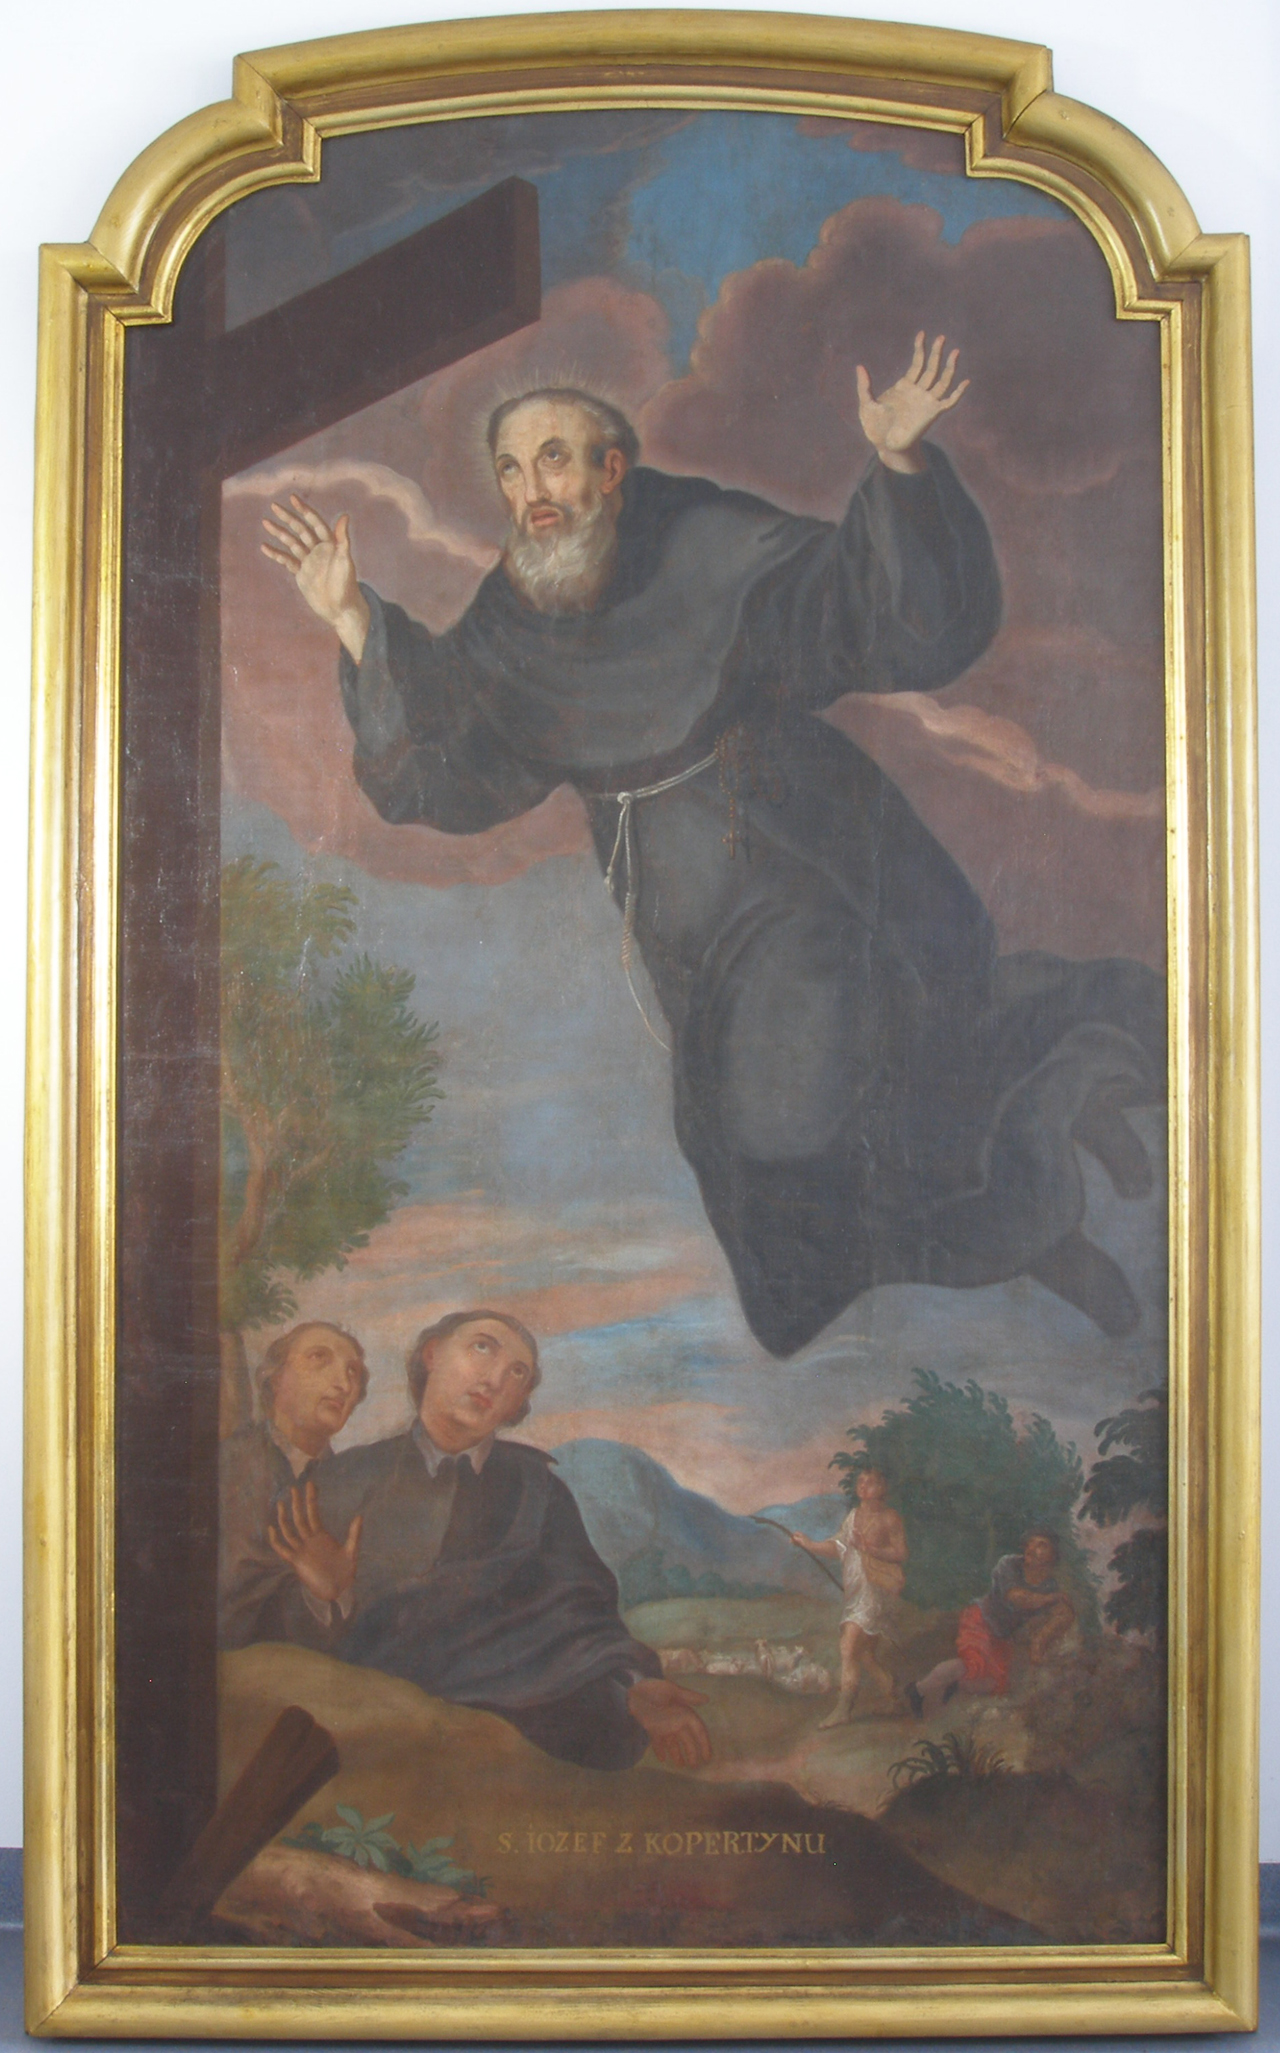 st joseph of cupertino Saint joseph of cupertino was born giuseppe maria desa in cupertino, apulia he was said to be prone to miraculous levitation and intense ecstatic visions he is recognized as the patron saint of air travelers, aviators, astronauts, people with a mental handicap, test takers, and weak students.